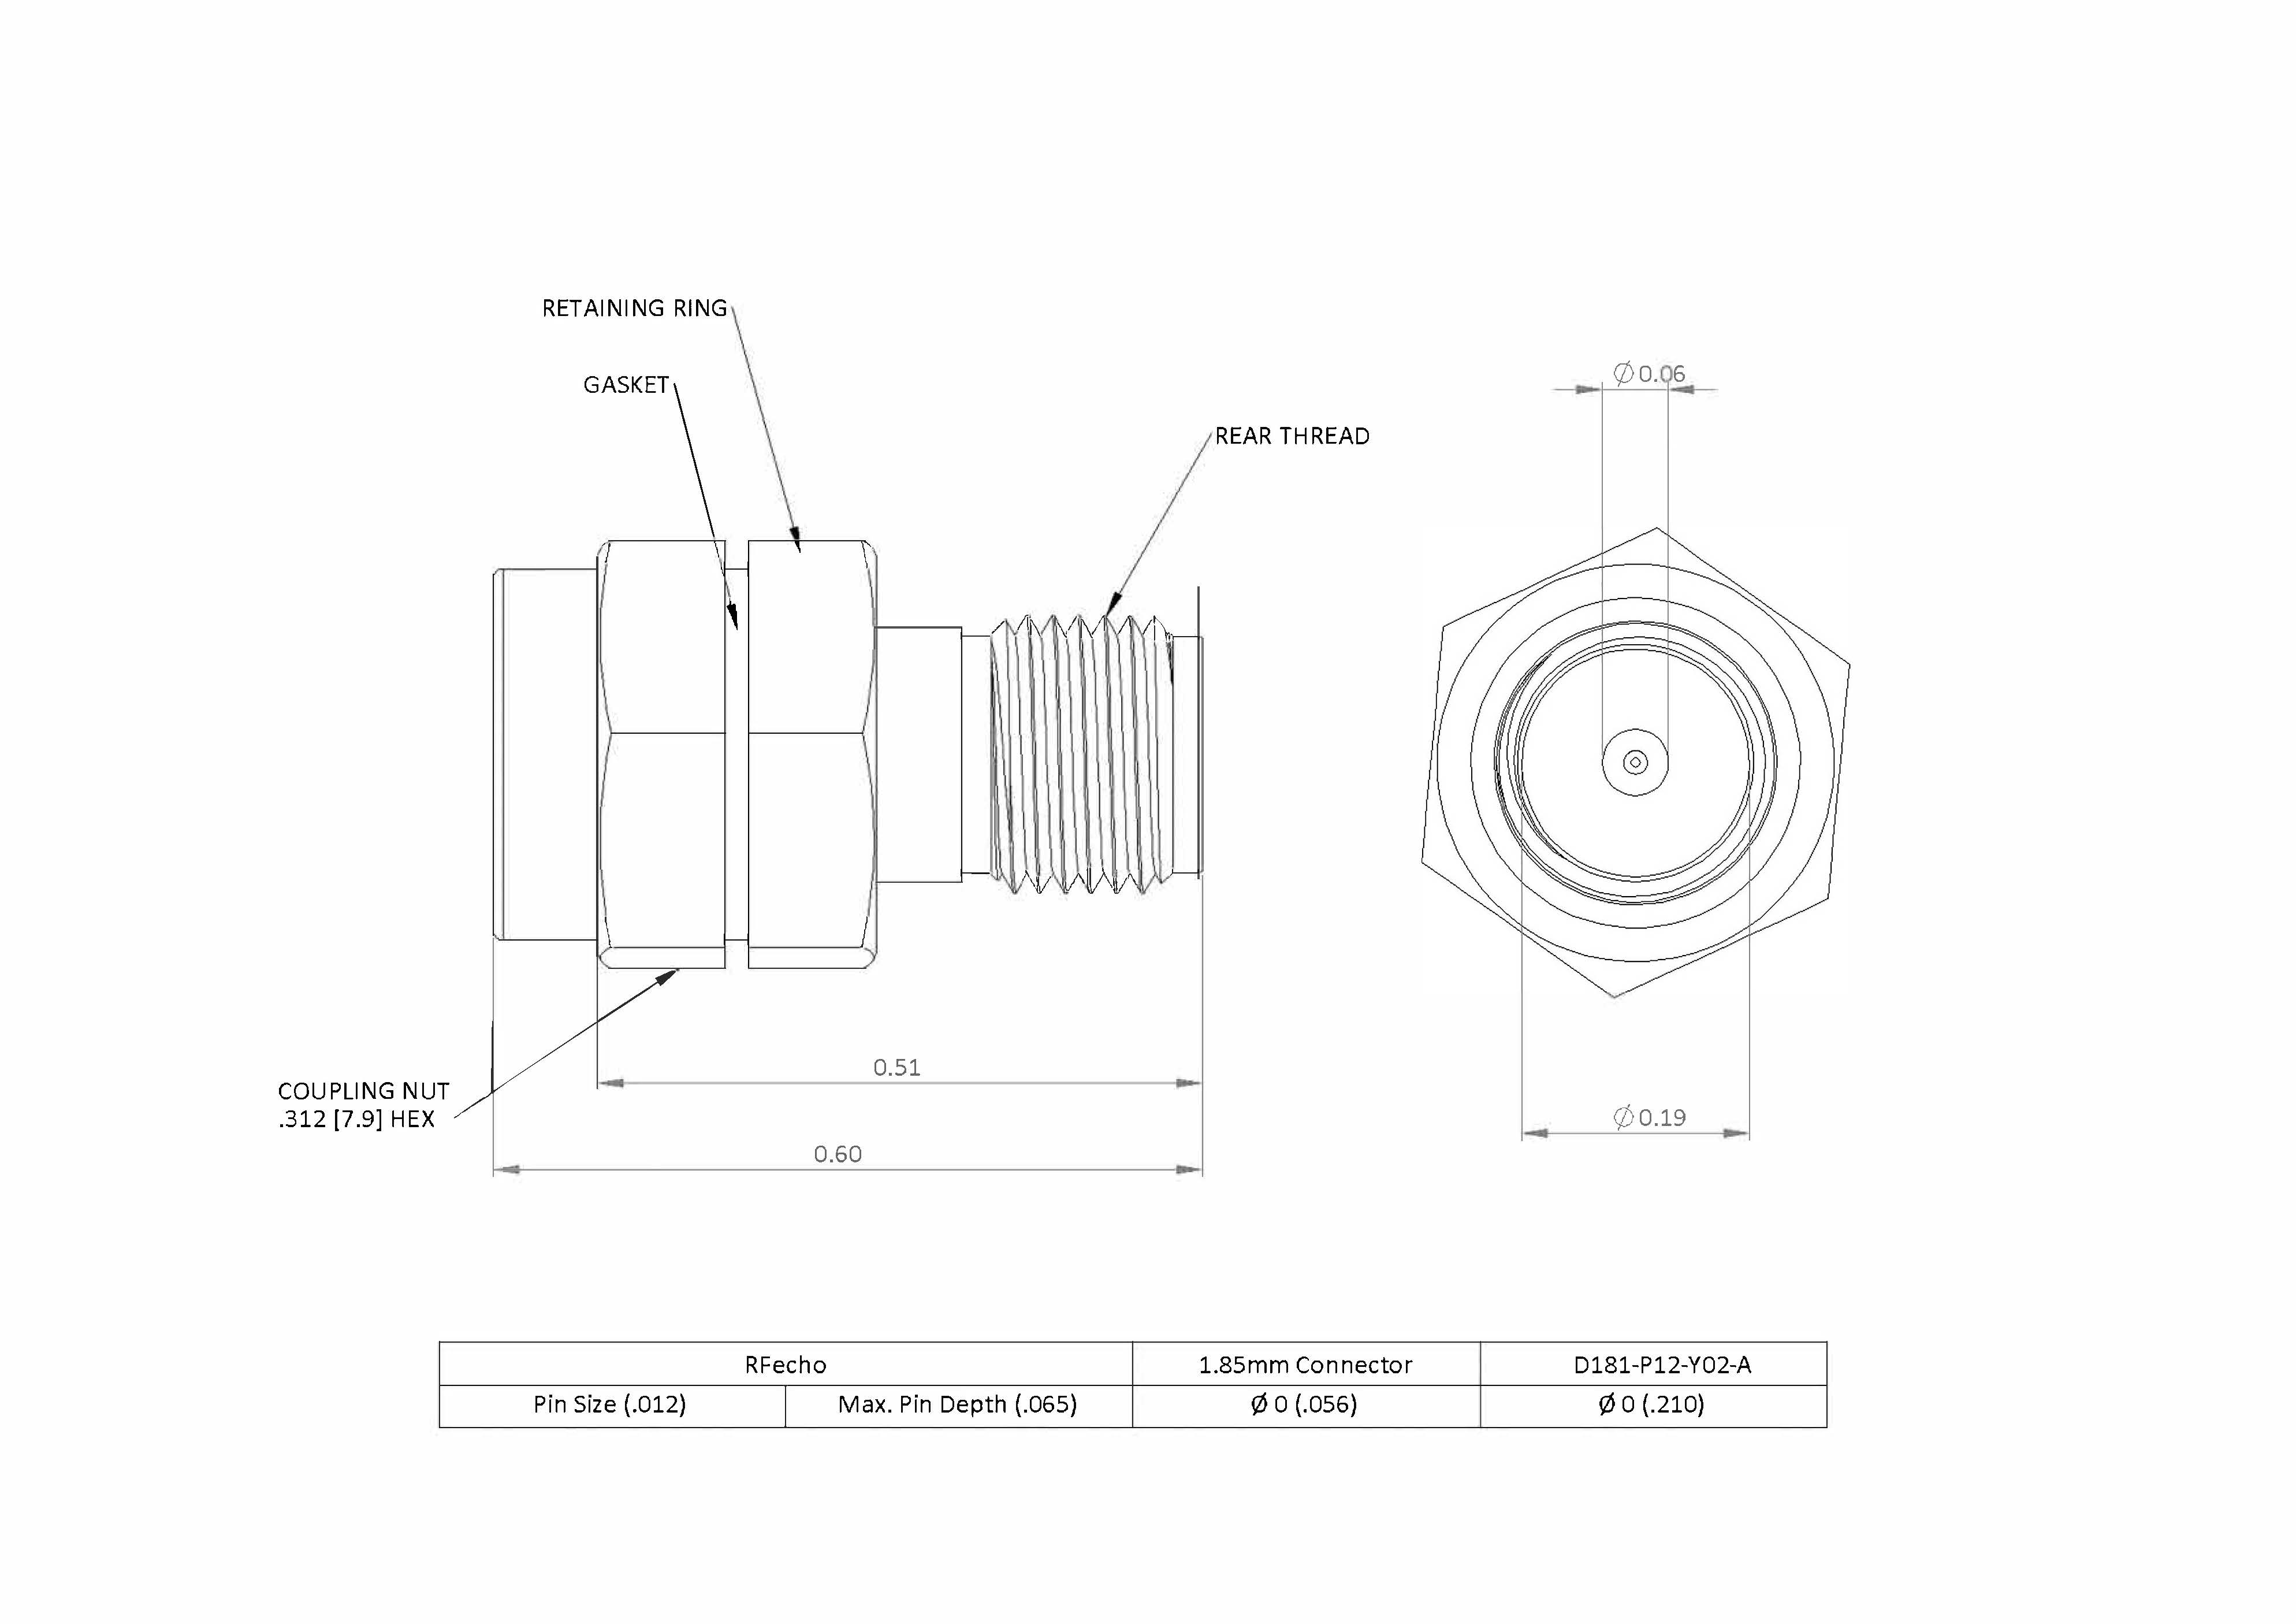 """1.85mm 67 GHz, 0.012"""" Accept Pin Diameter, Thread-In Male Connector"""